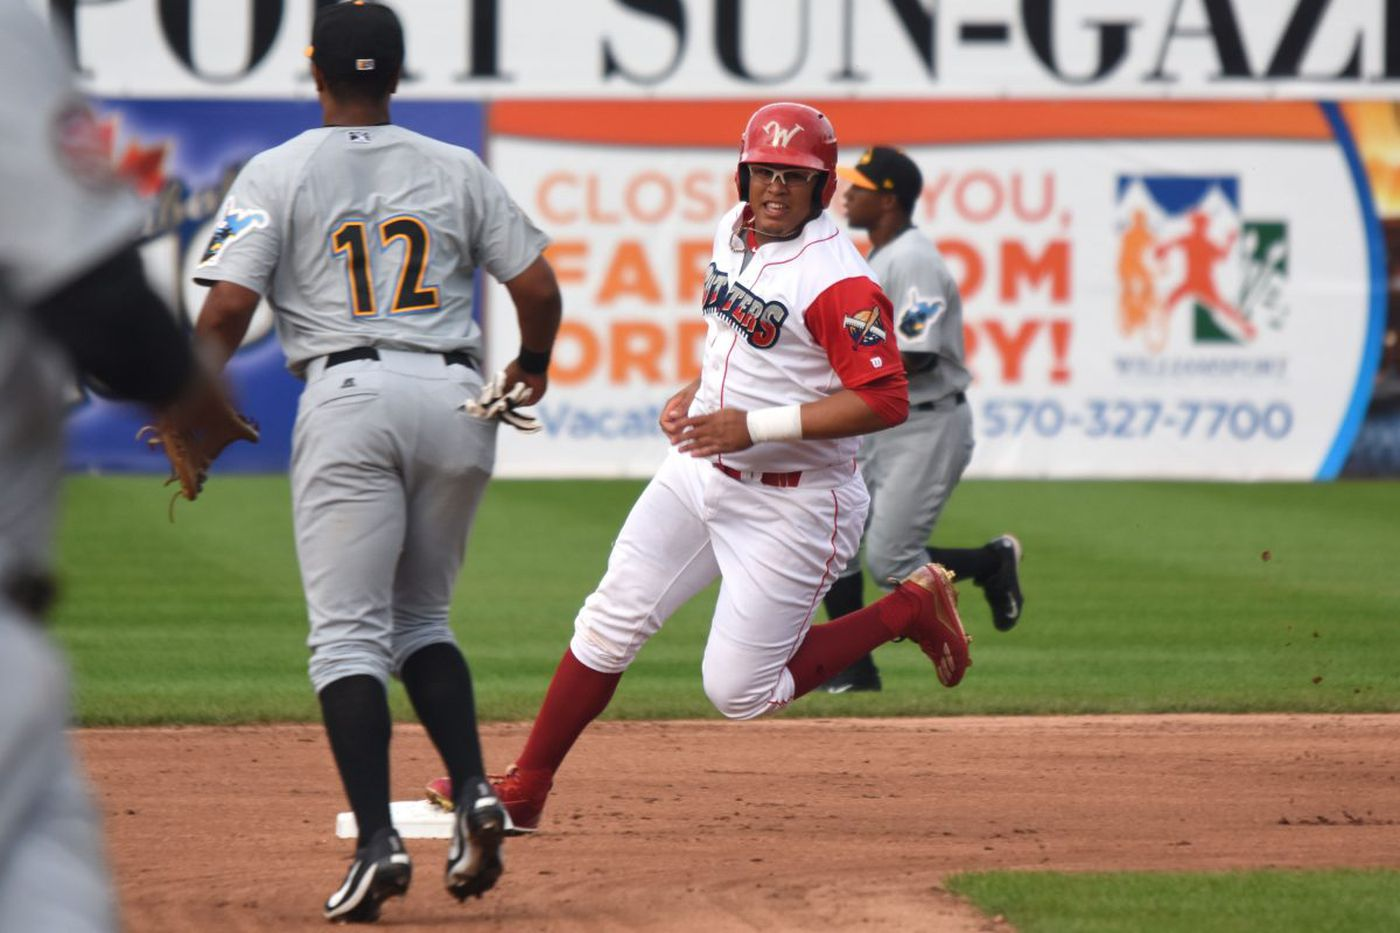 Phillies prospect Jhailyn Ortiz turning heads with power (and speed) | Bob Brookover